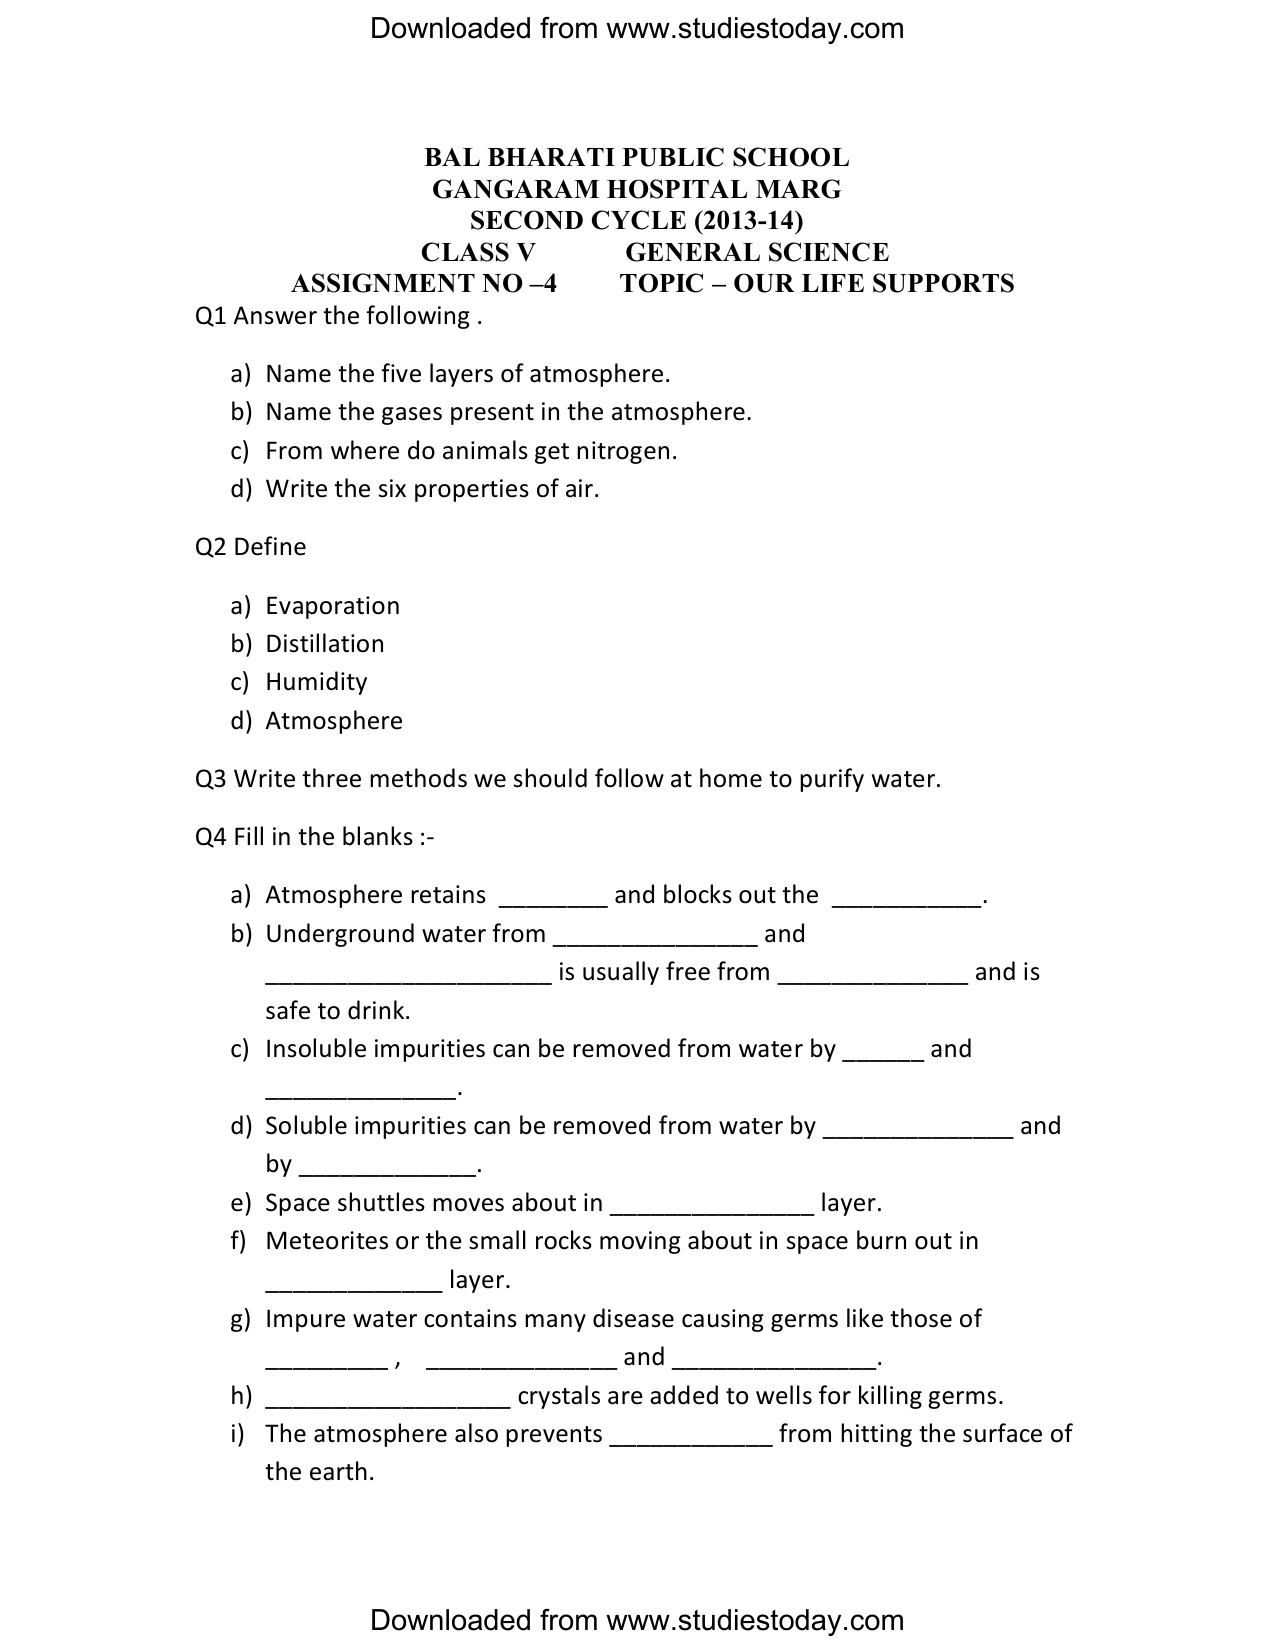 hight resolution of CBSE Class 5 Science Worksheets (4)